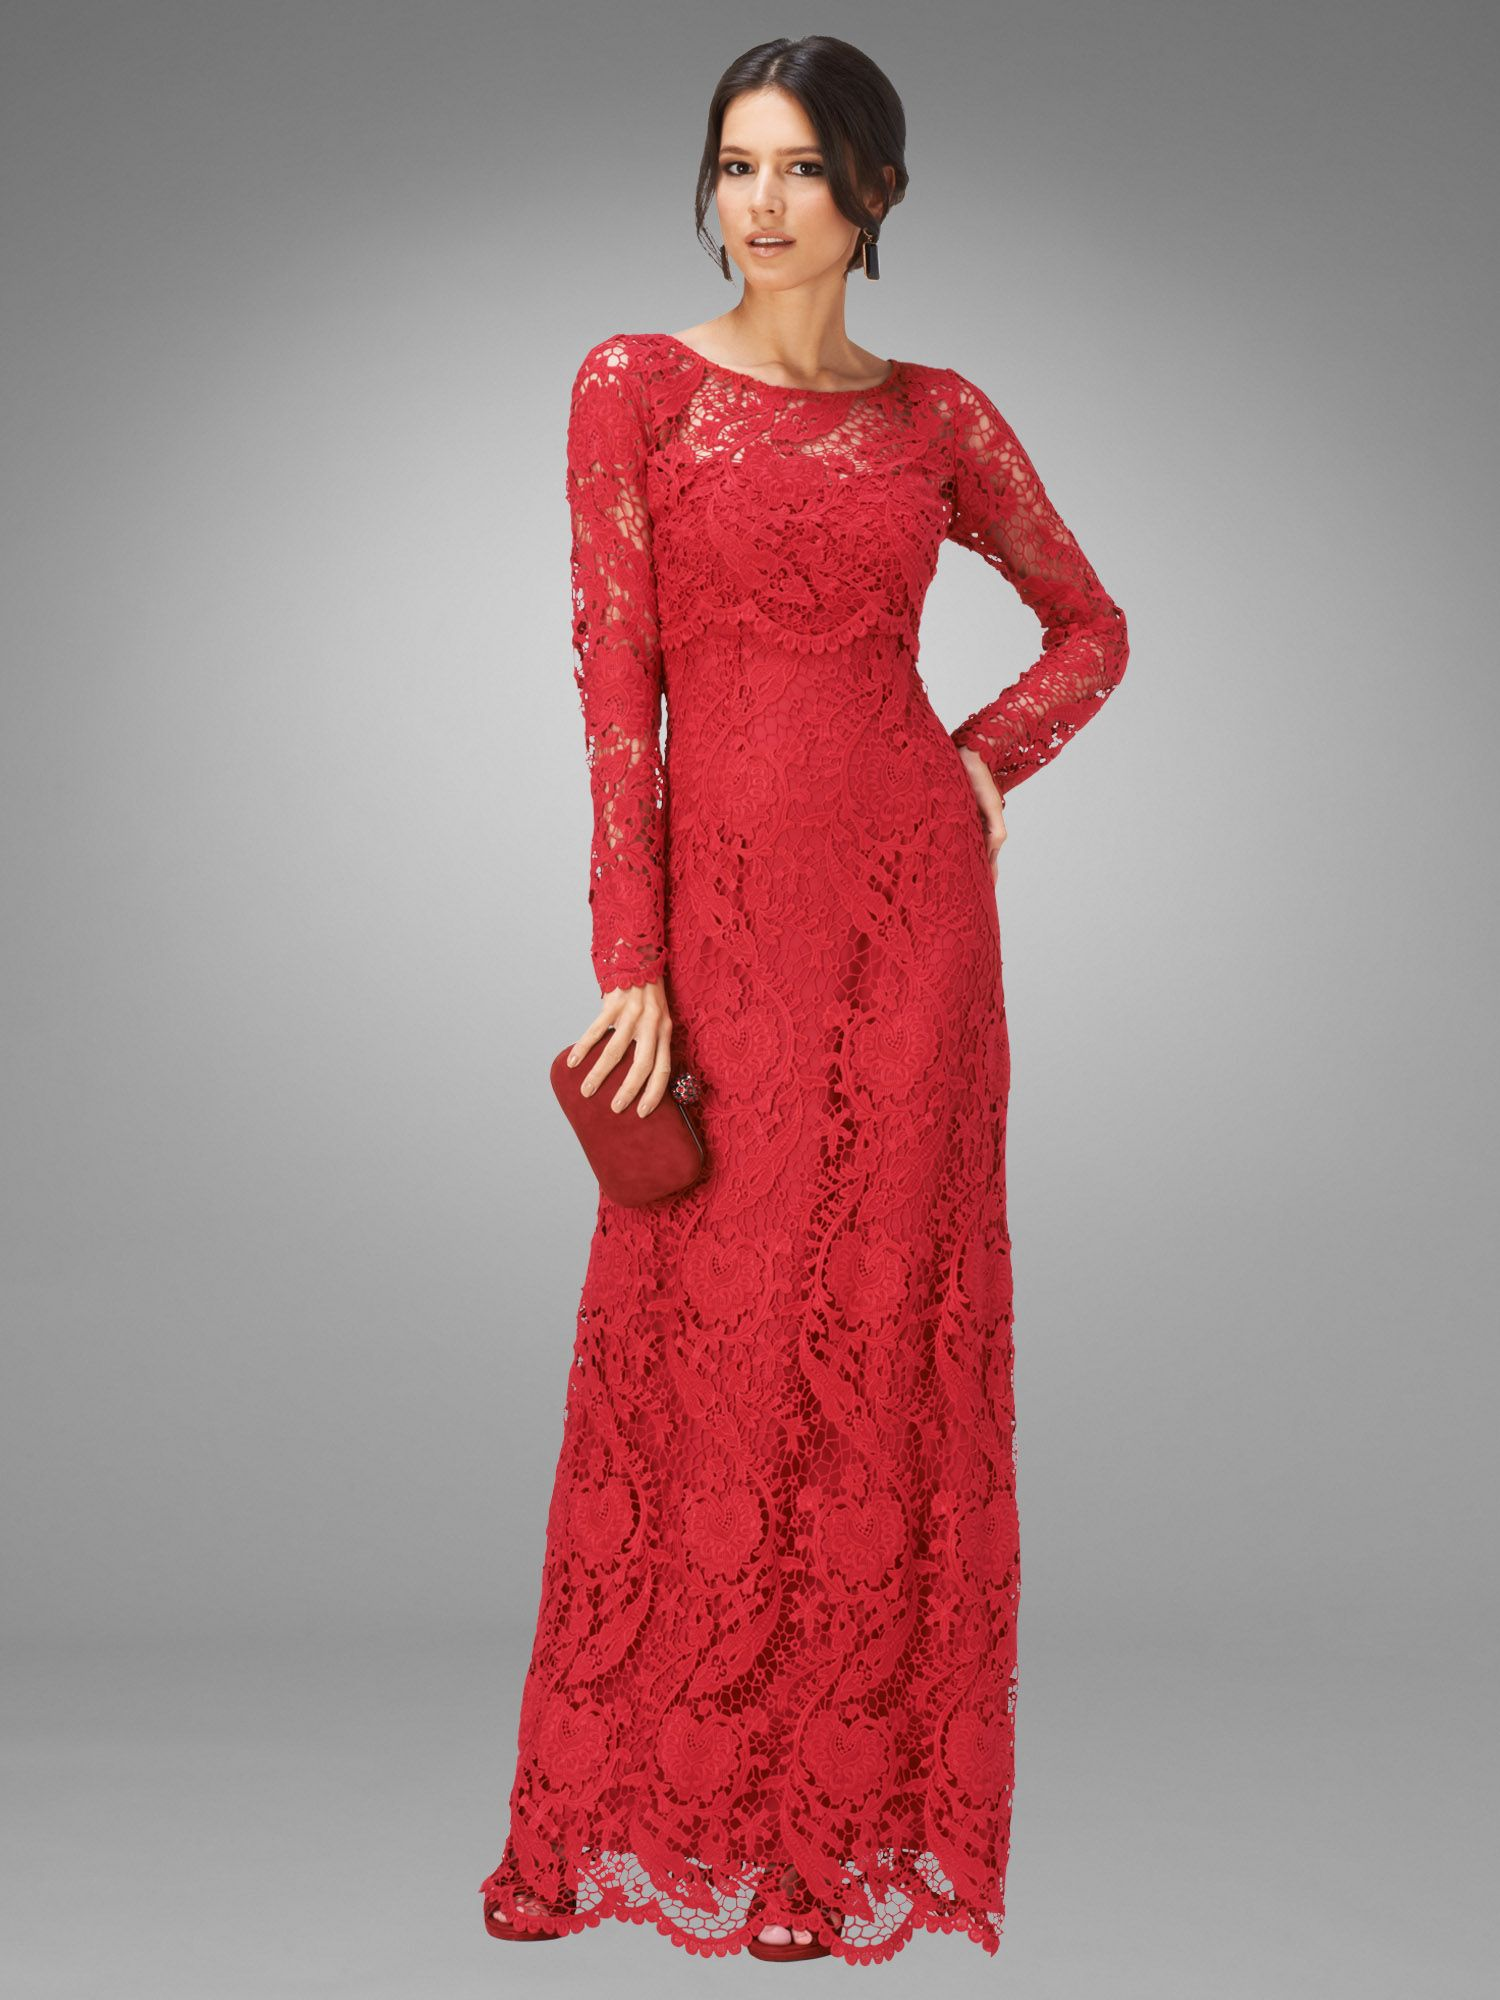 Adrianna lace full length dress